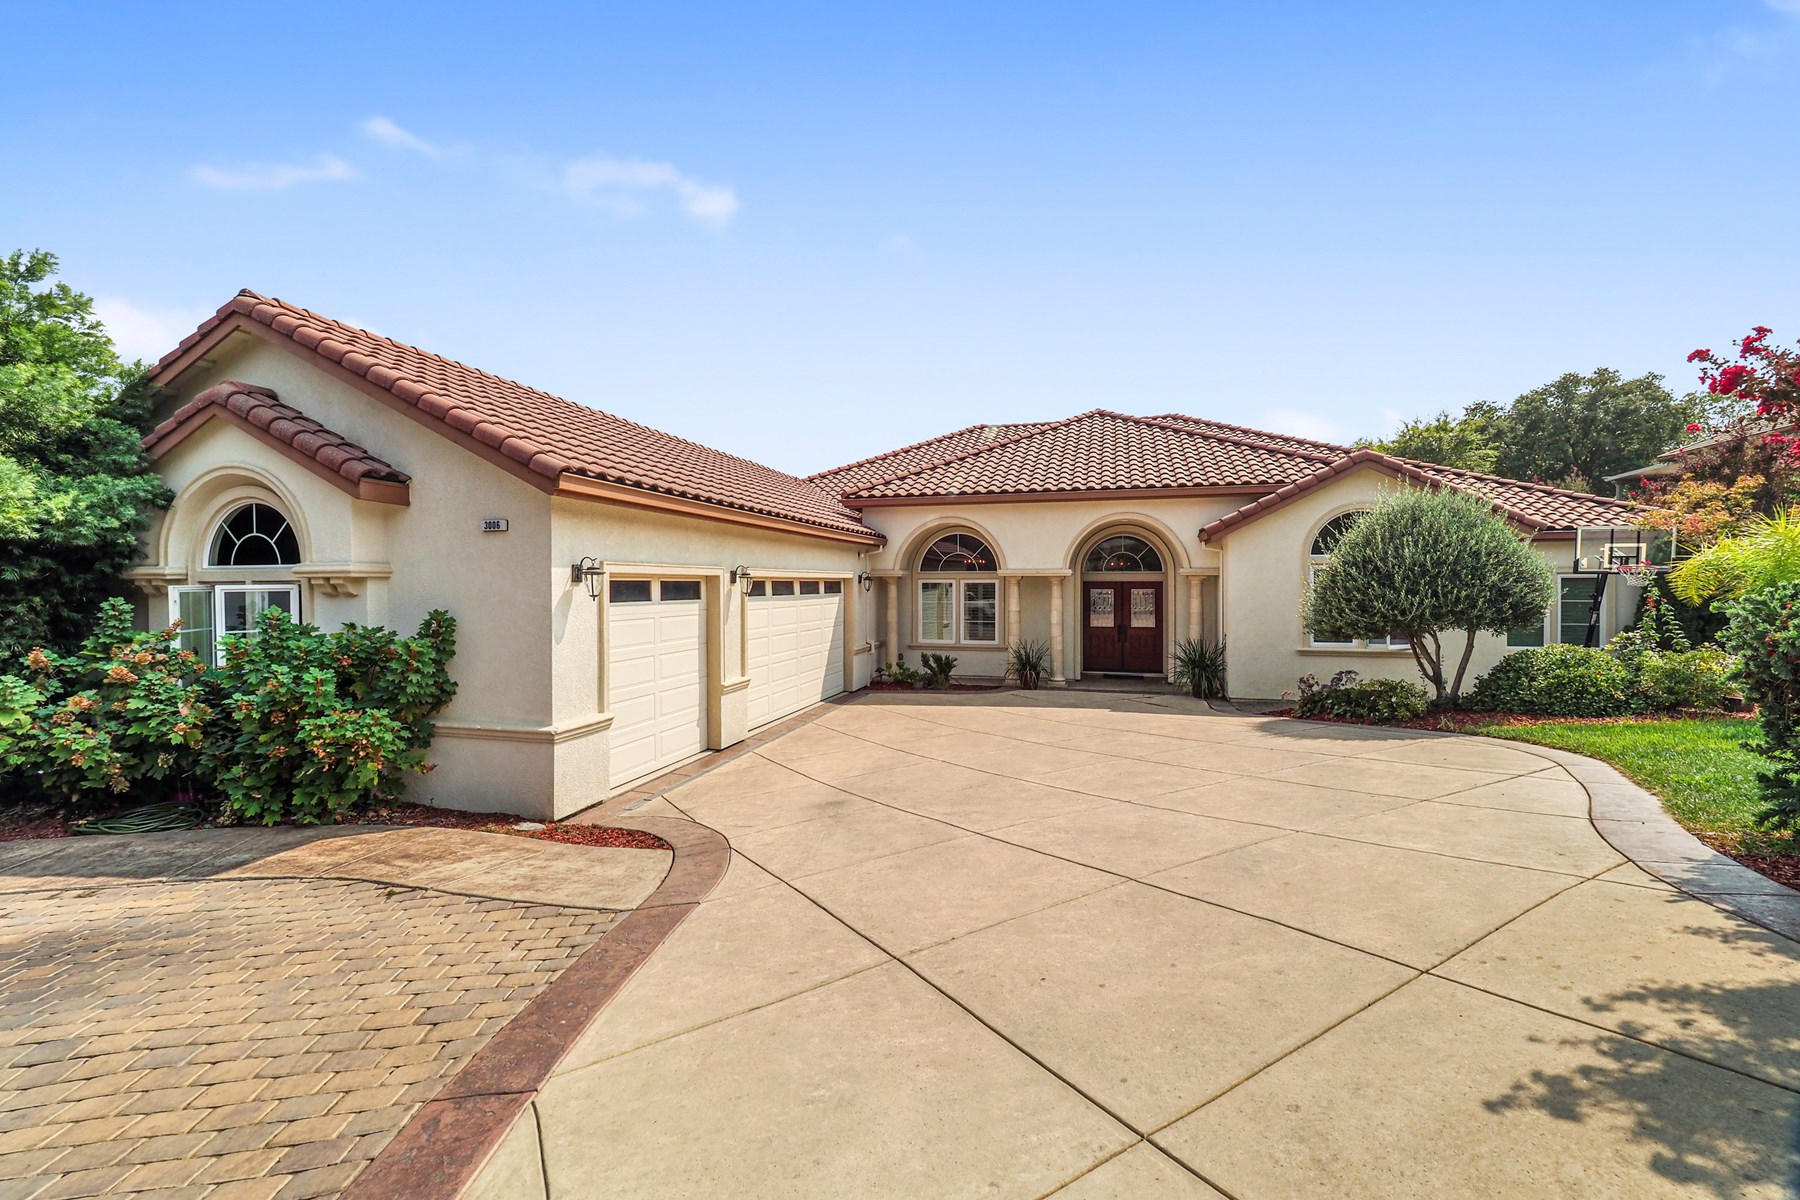 Executive Home for Sale in Vacaville, CA - Single Story